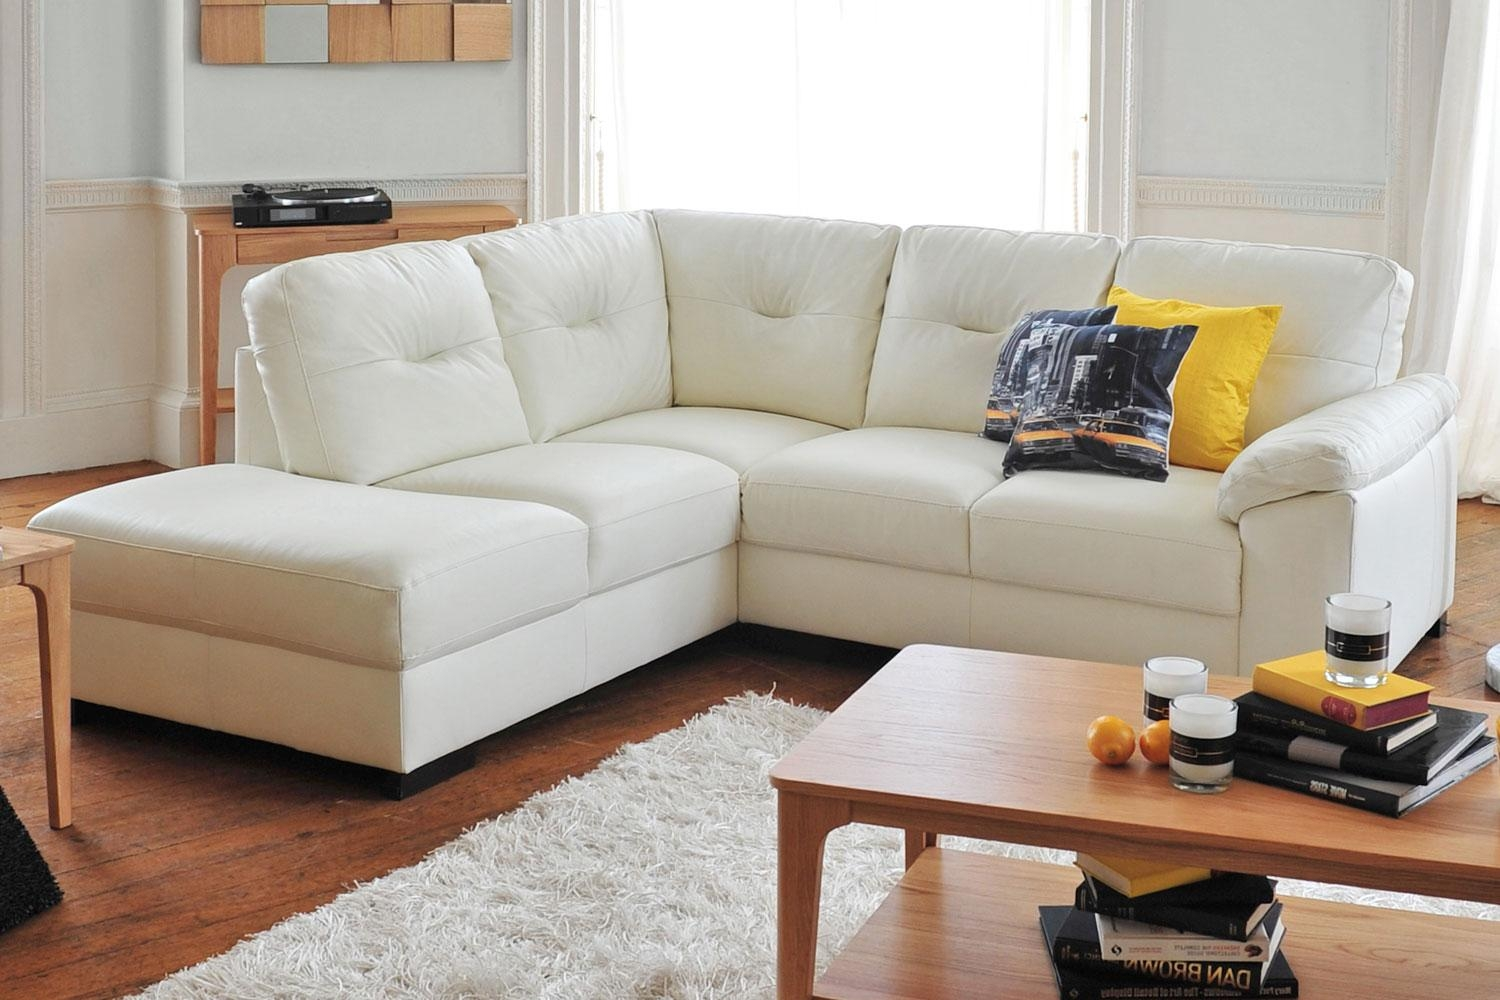 Pictures Of Best Sofa Set Designs 2016 With Corner Sofa And Swivel In Corner Sofa And Swivel Chairs (Image 20 of 20)